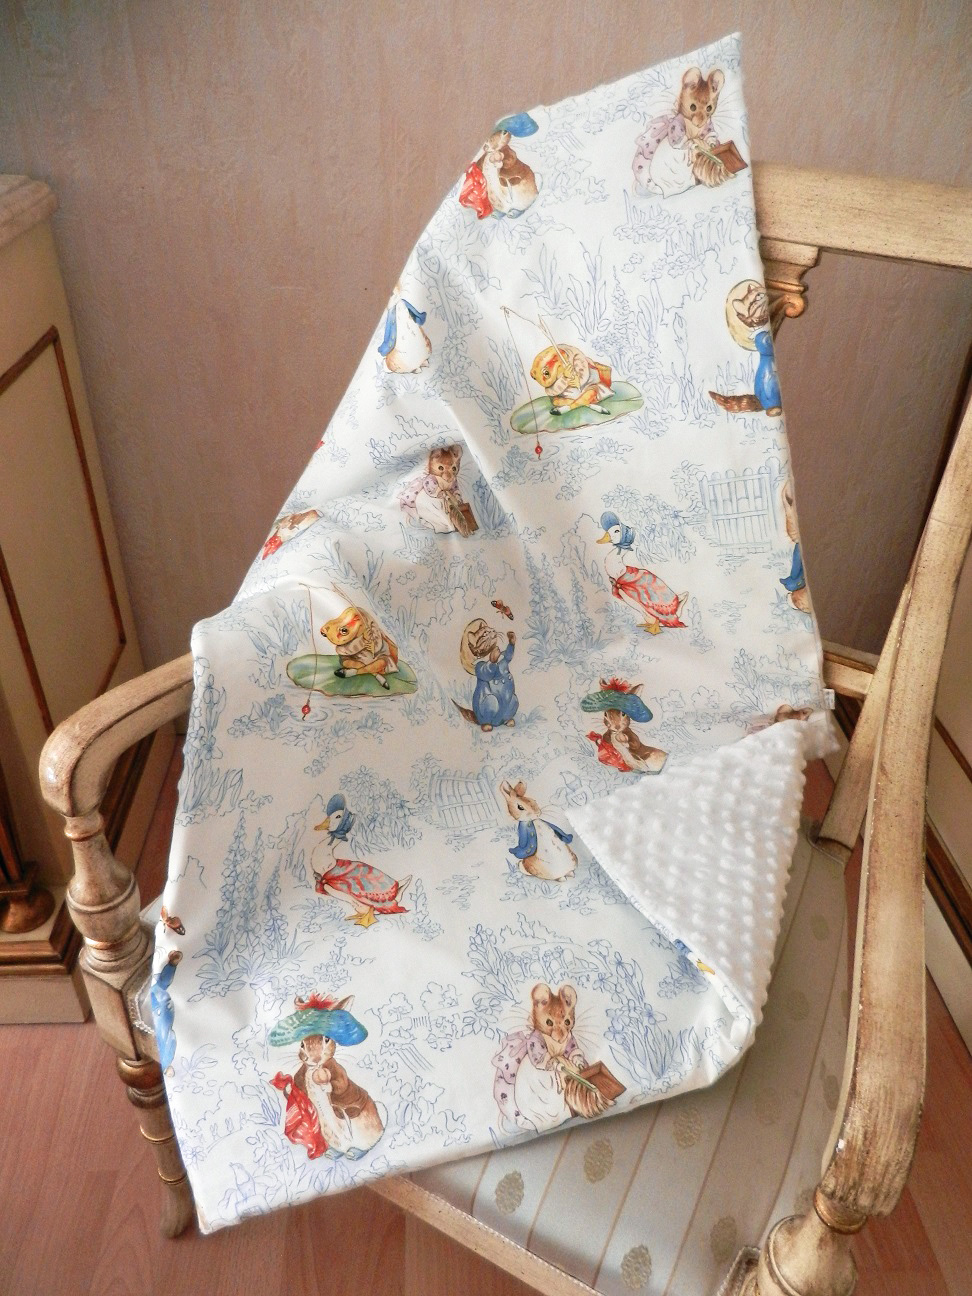 Duchesse or ange doaa 65 couverture bebe beatrix potter minky b